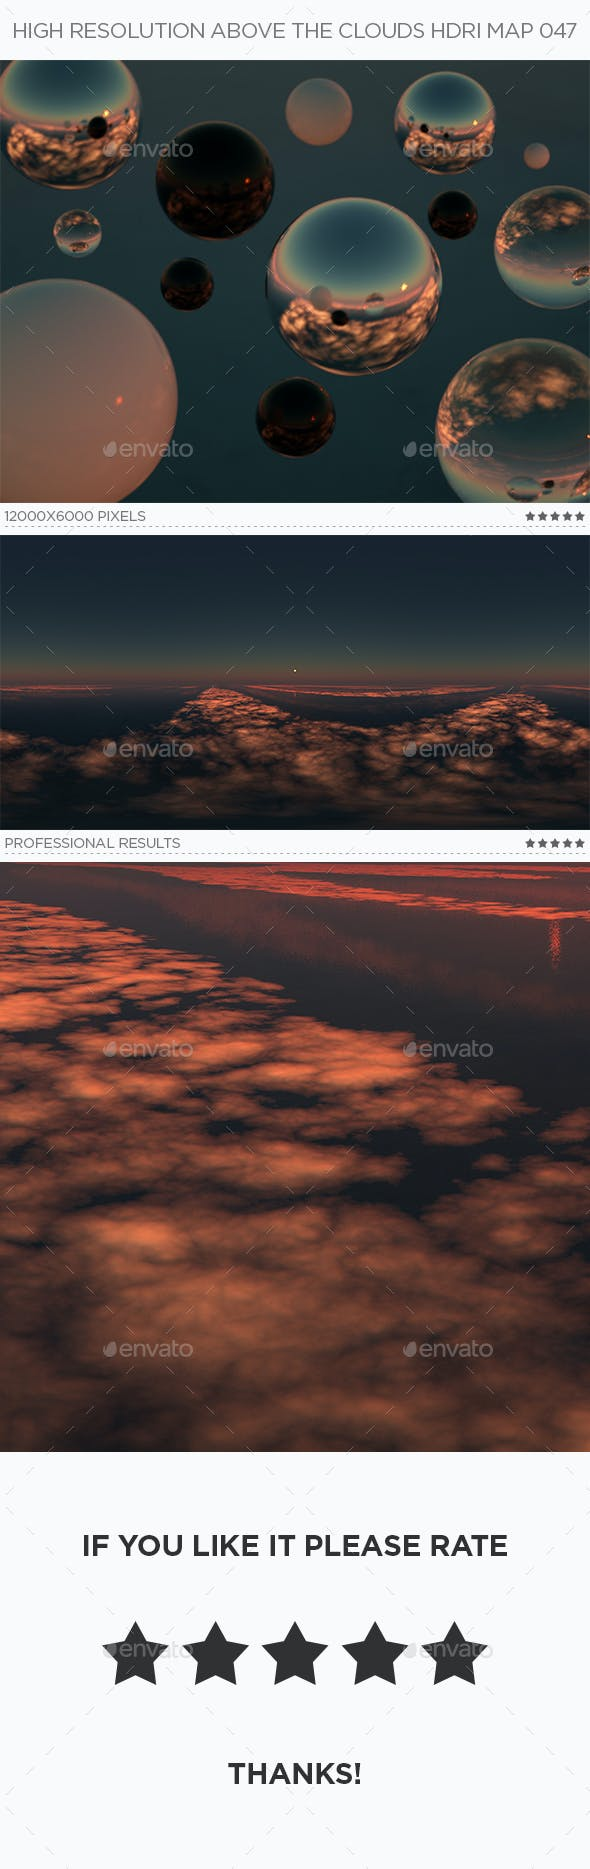 High Resolution Above The Clouds HDRi Map 047 - 3DOcean Item for Sale